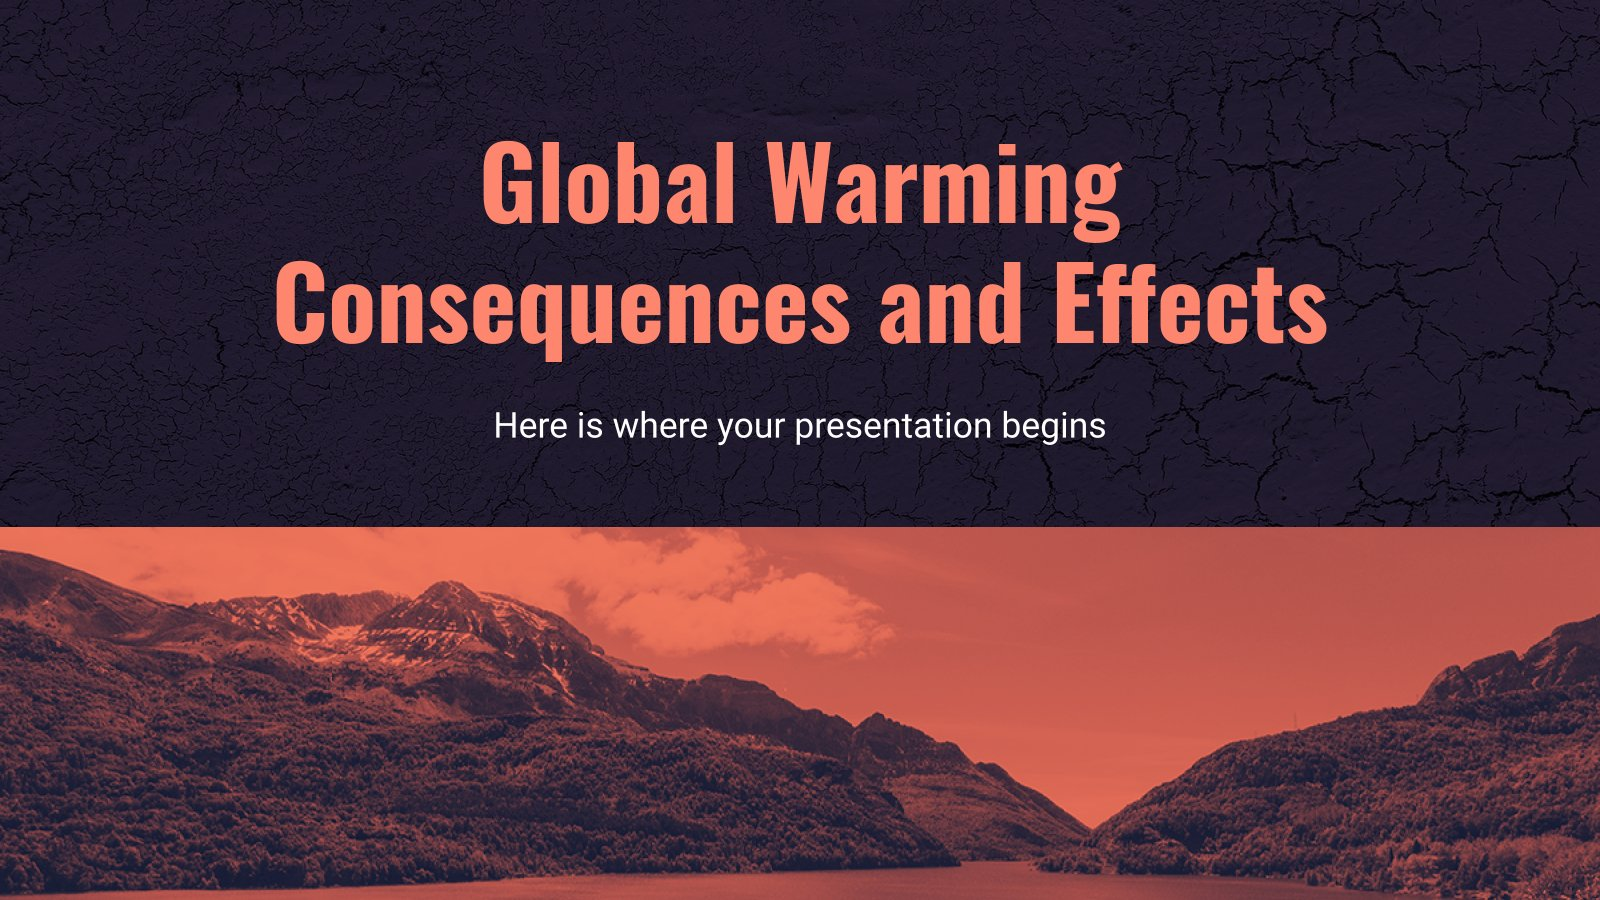 Global Warming Consequences and Effects presentation template